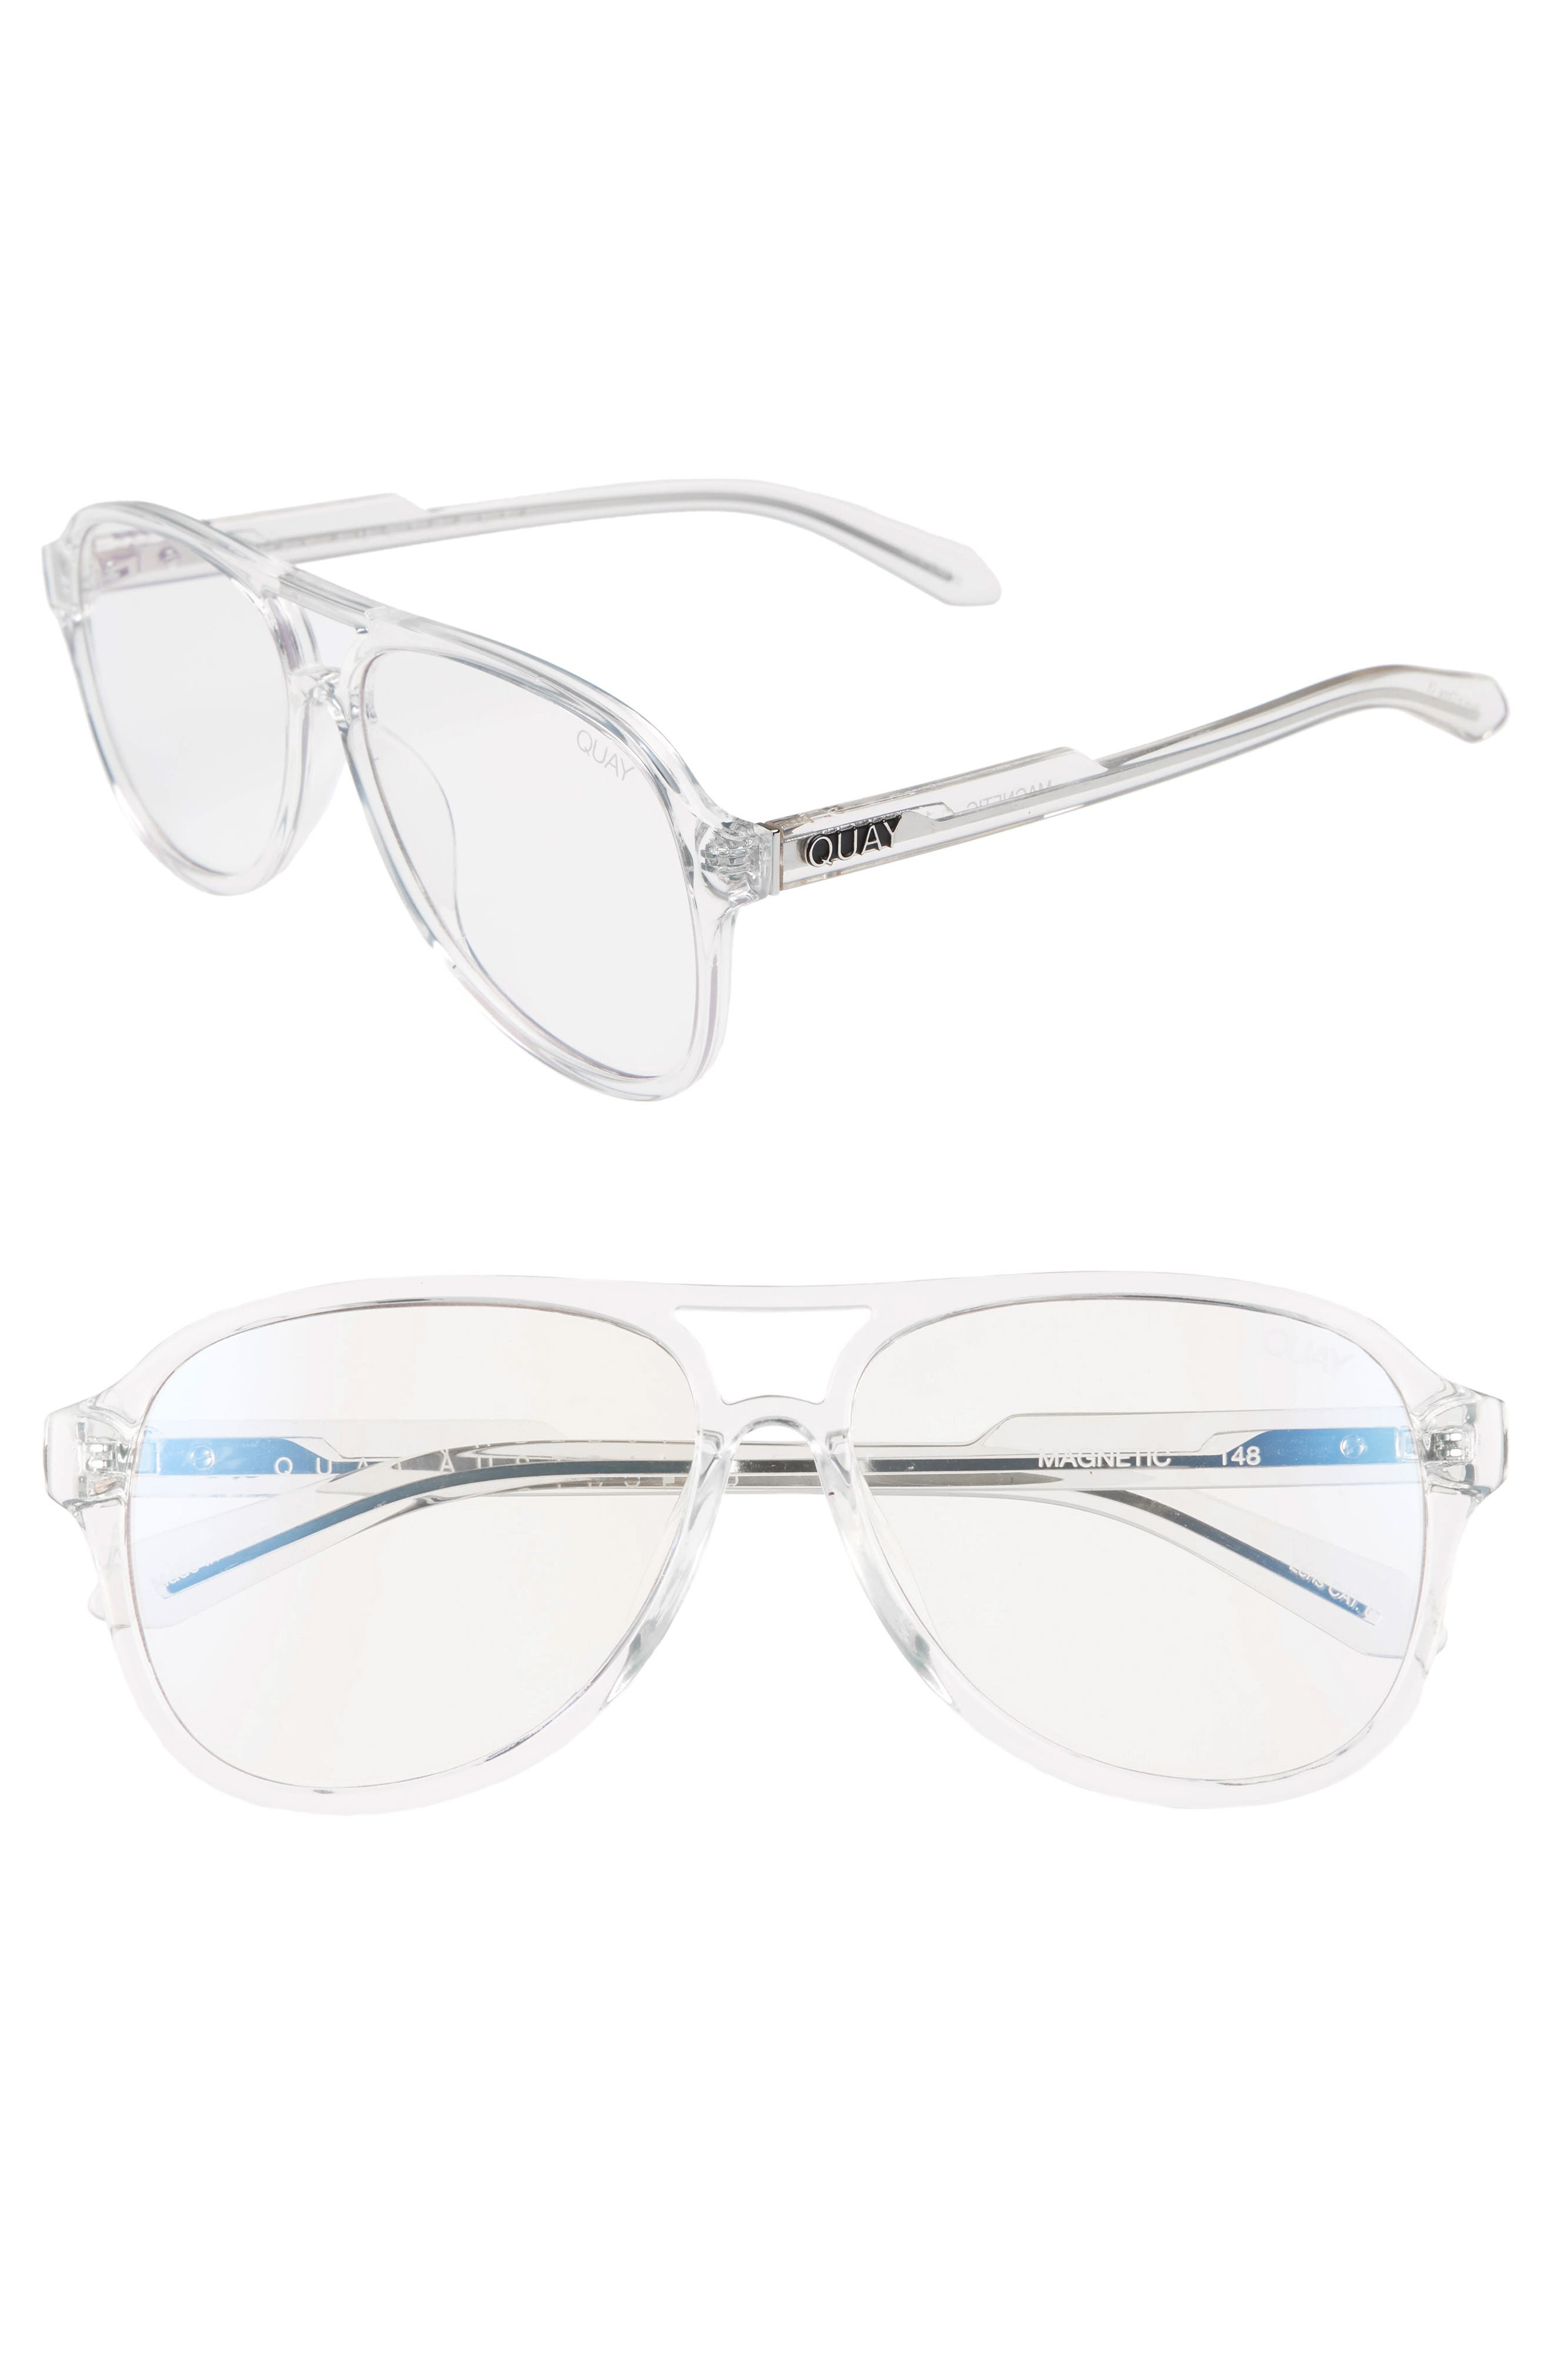 Magnetic 55mm Aviator Fashion Glasses,                         Main,                         color, CLEAR/ CLEAR